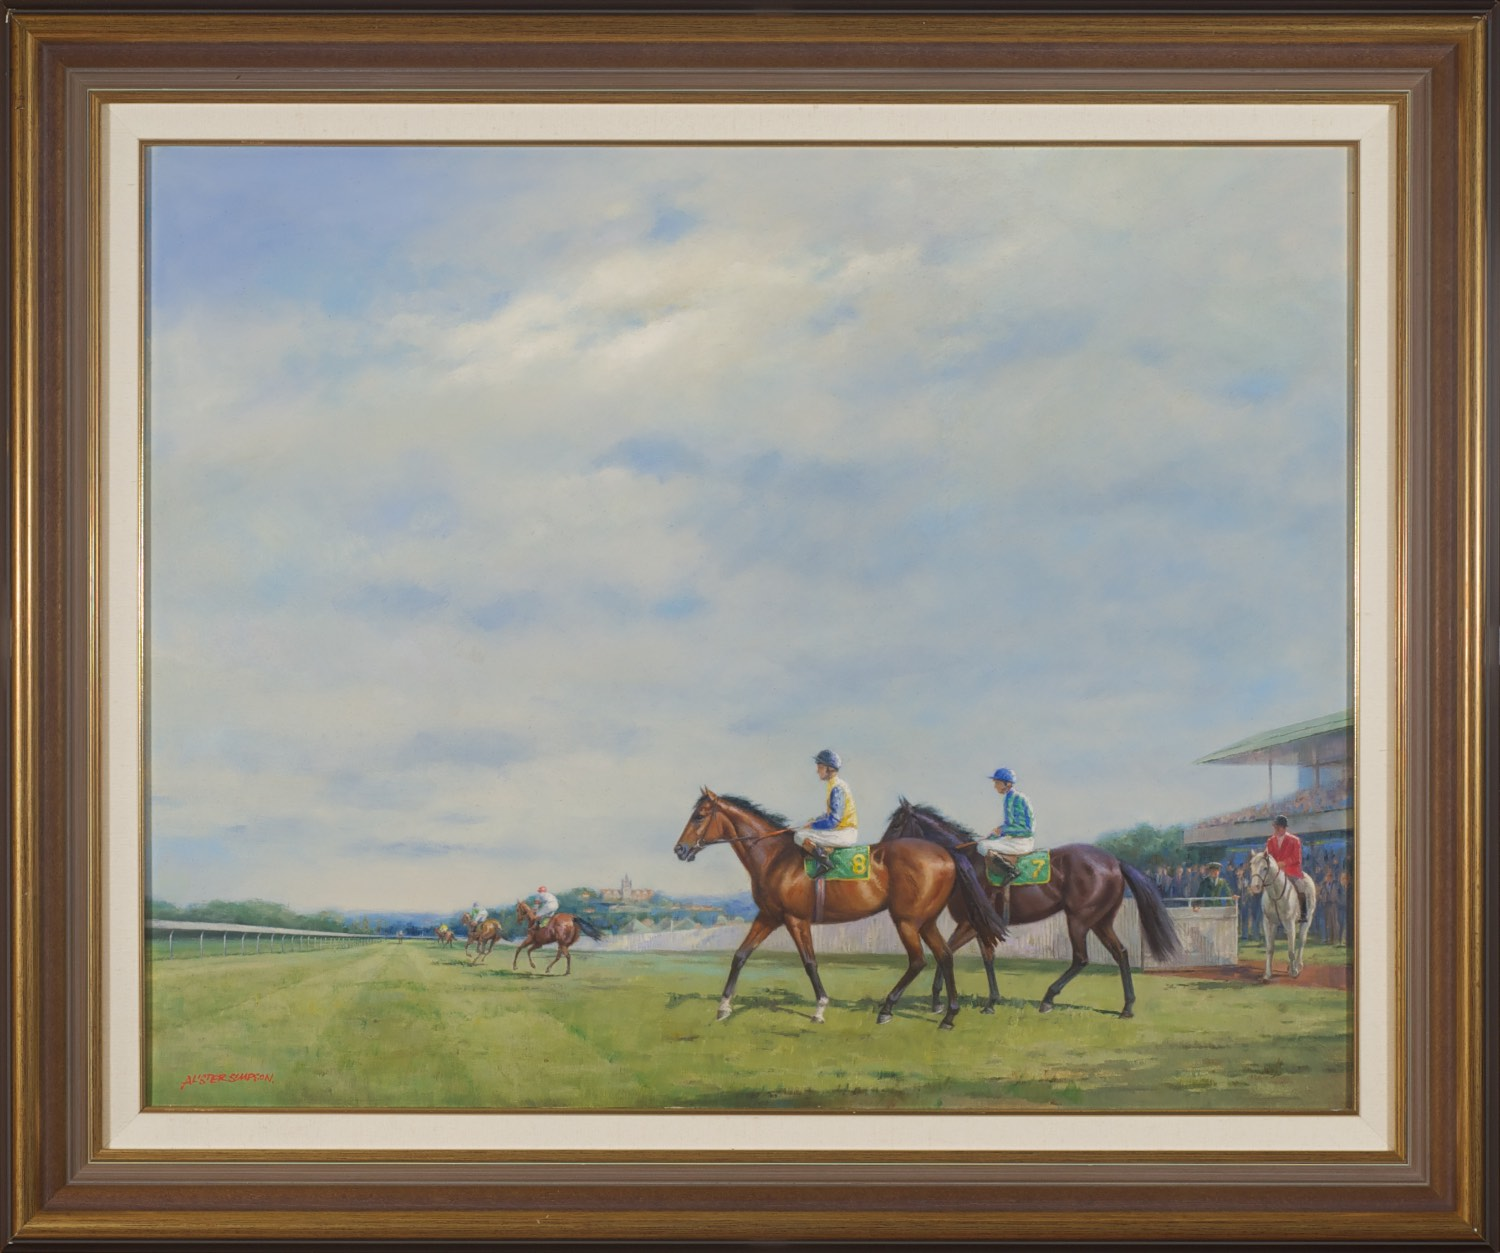 #10728 Alister Simpson 'In the Lead' 76cm x 93cm